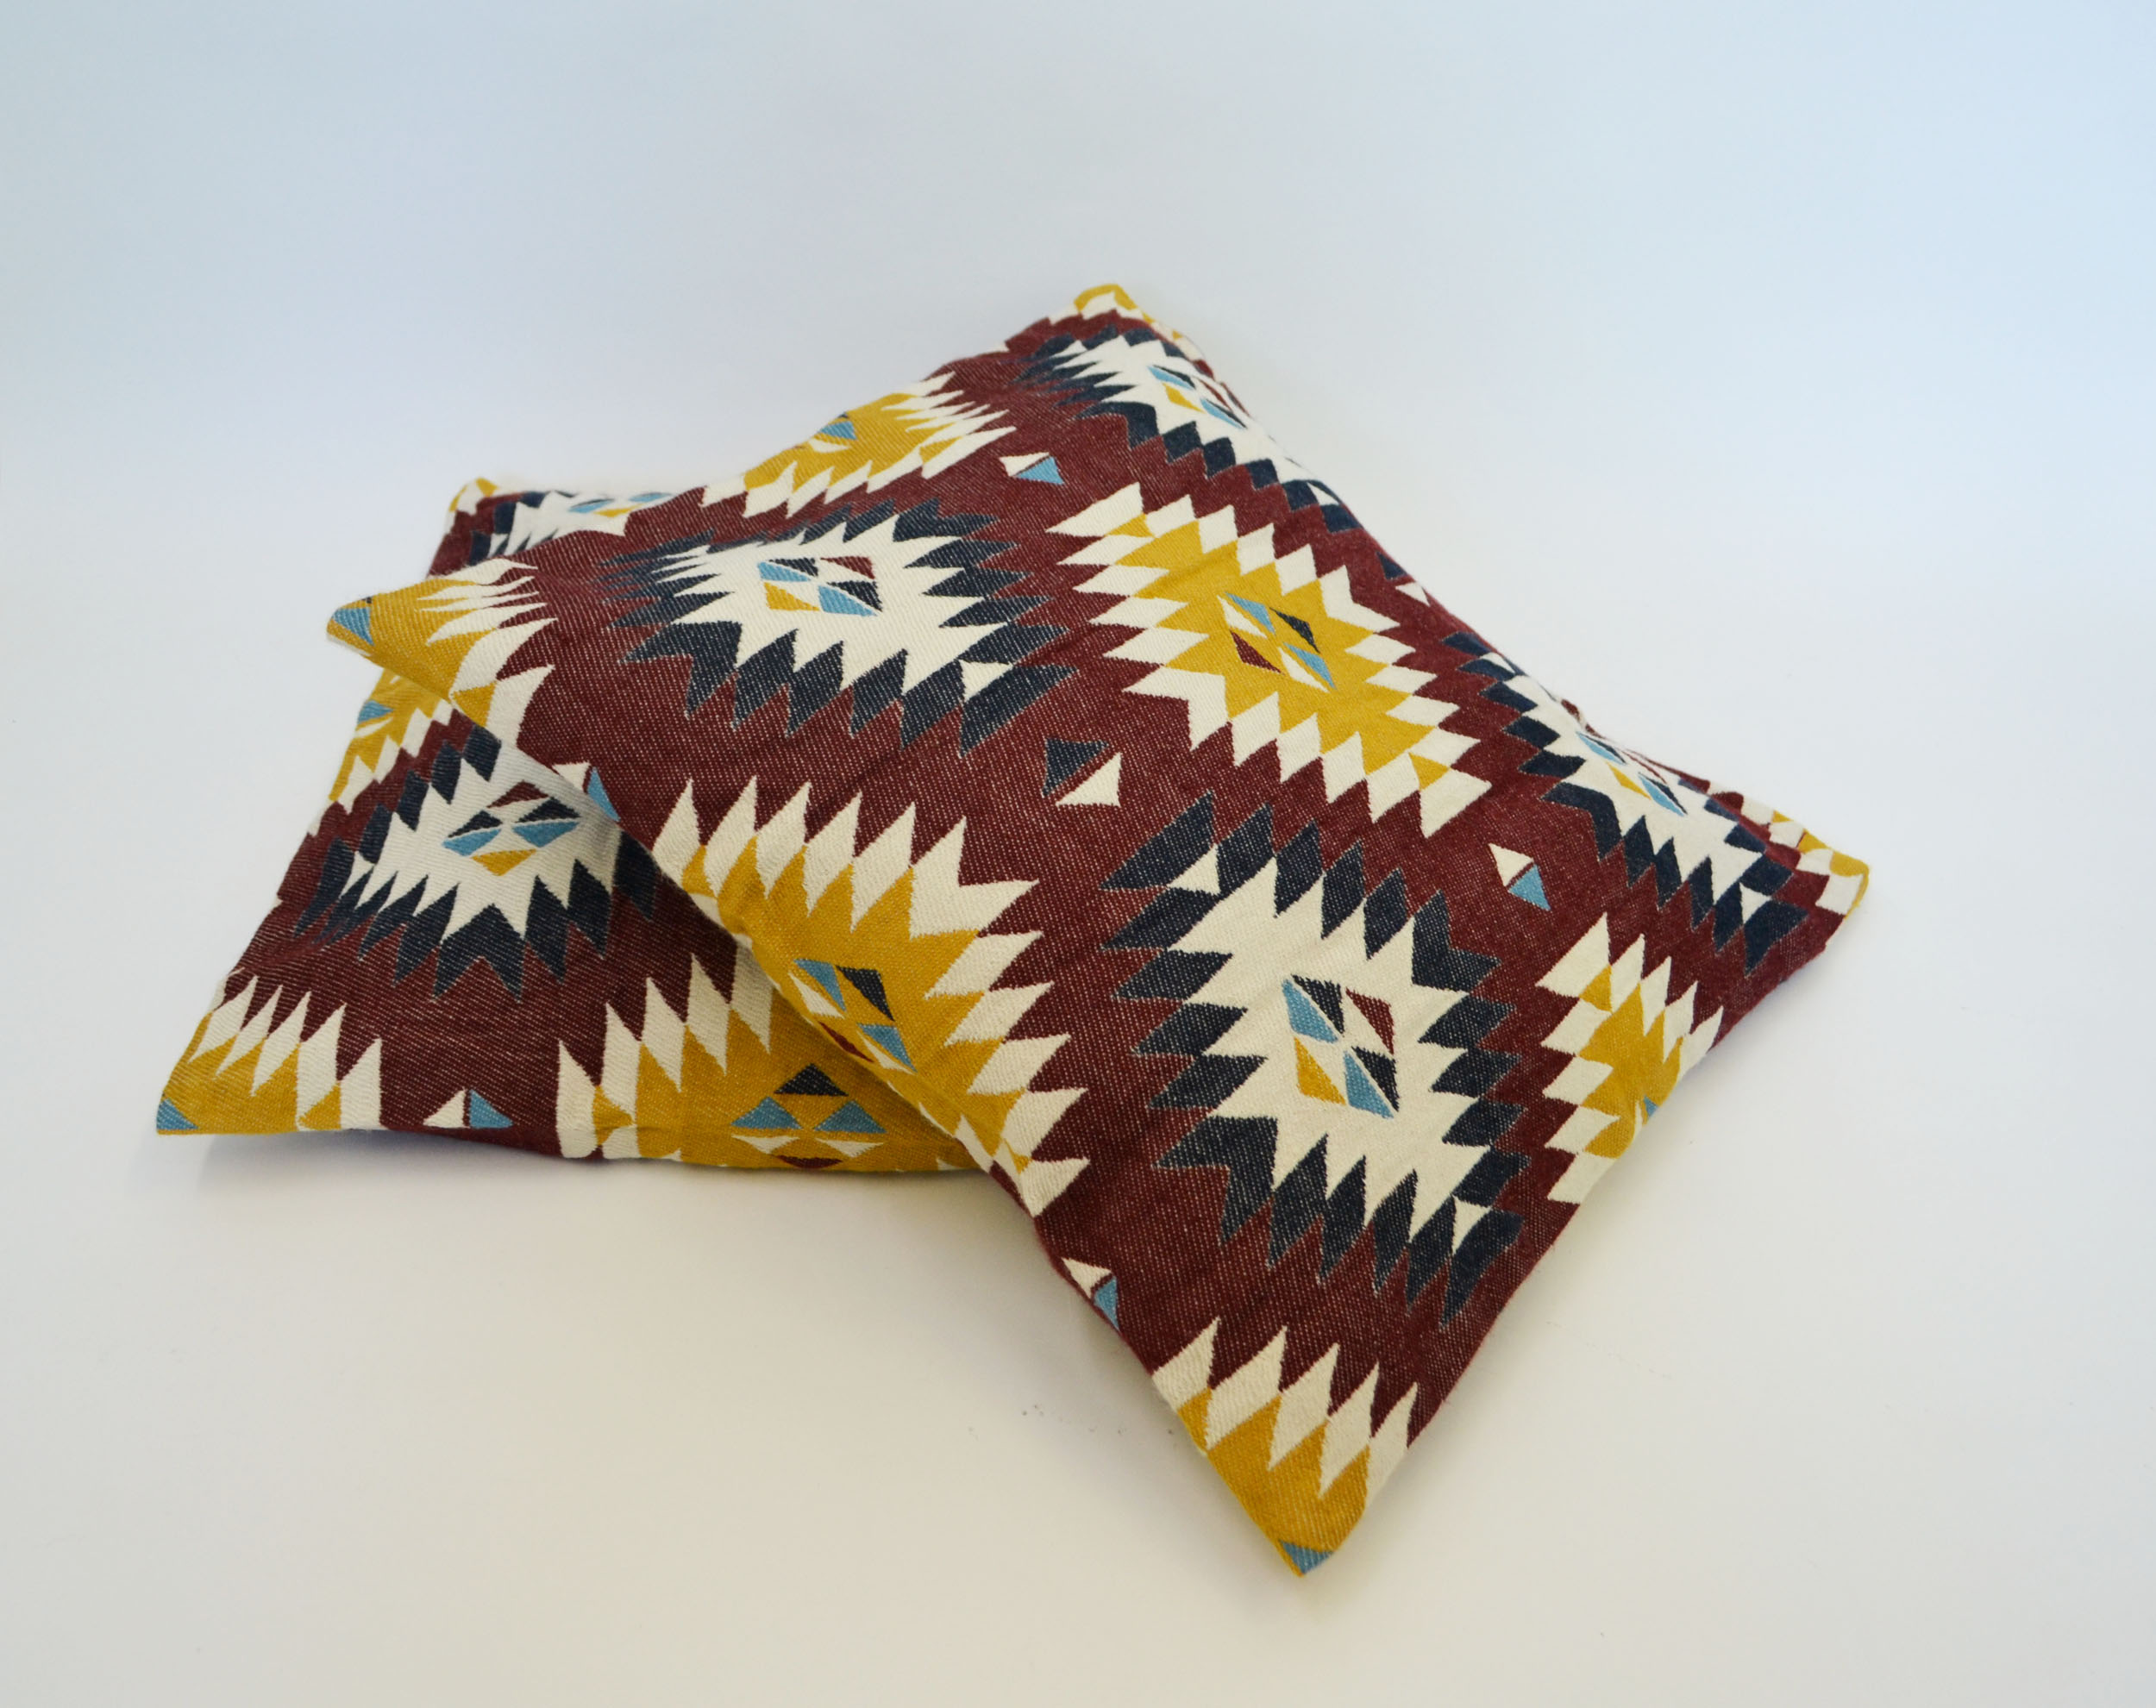 south western pillow - red   Quantity: 2  Price: $10.00